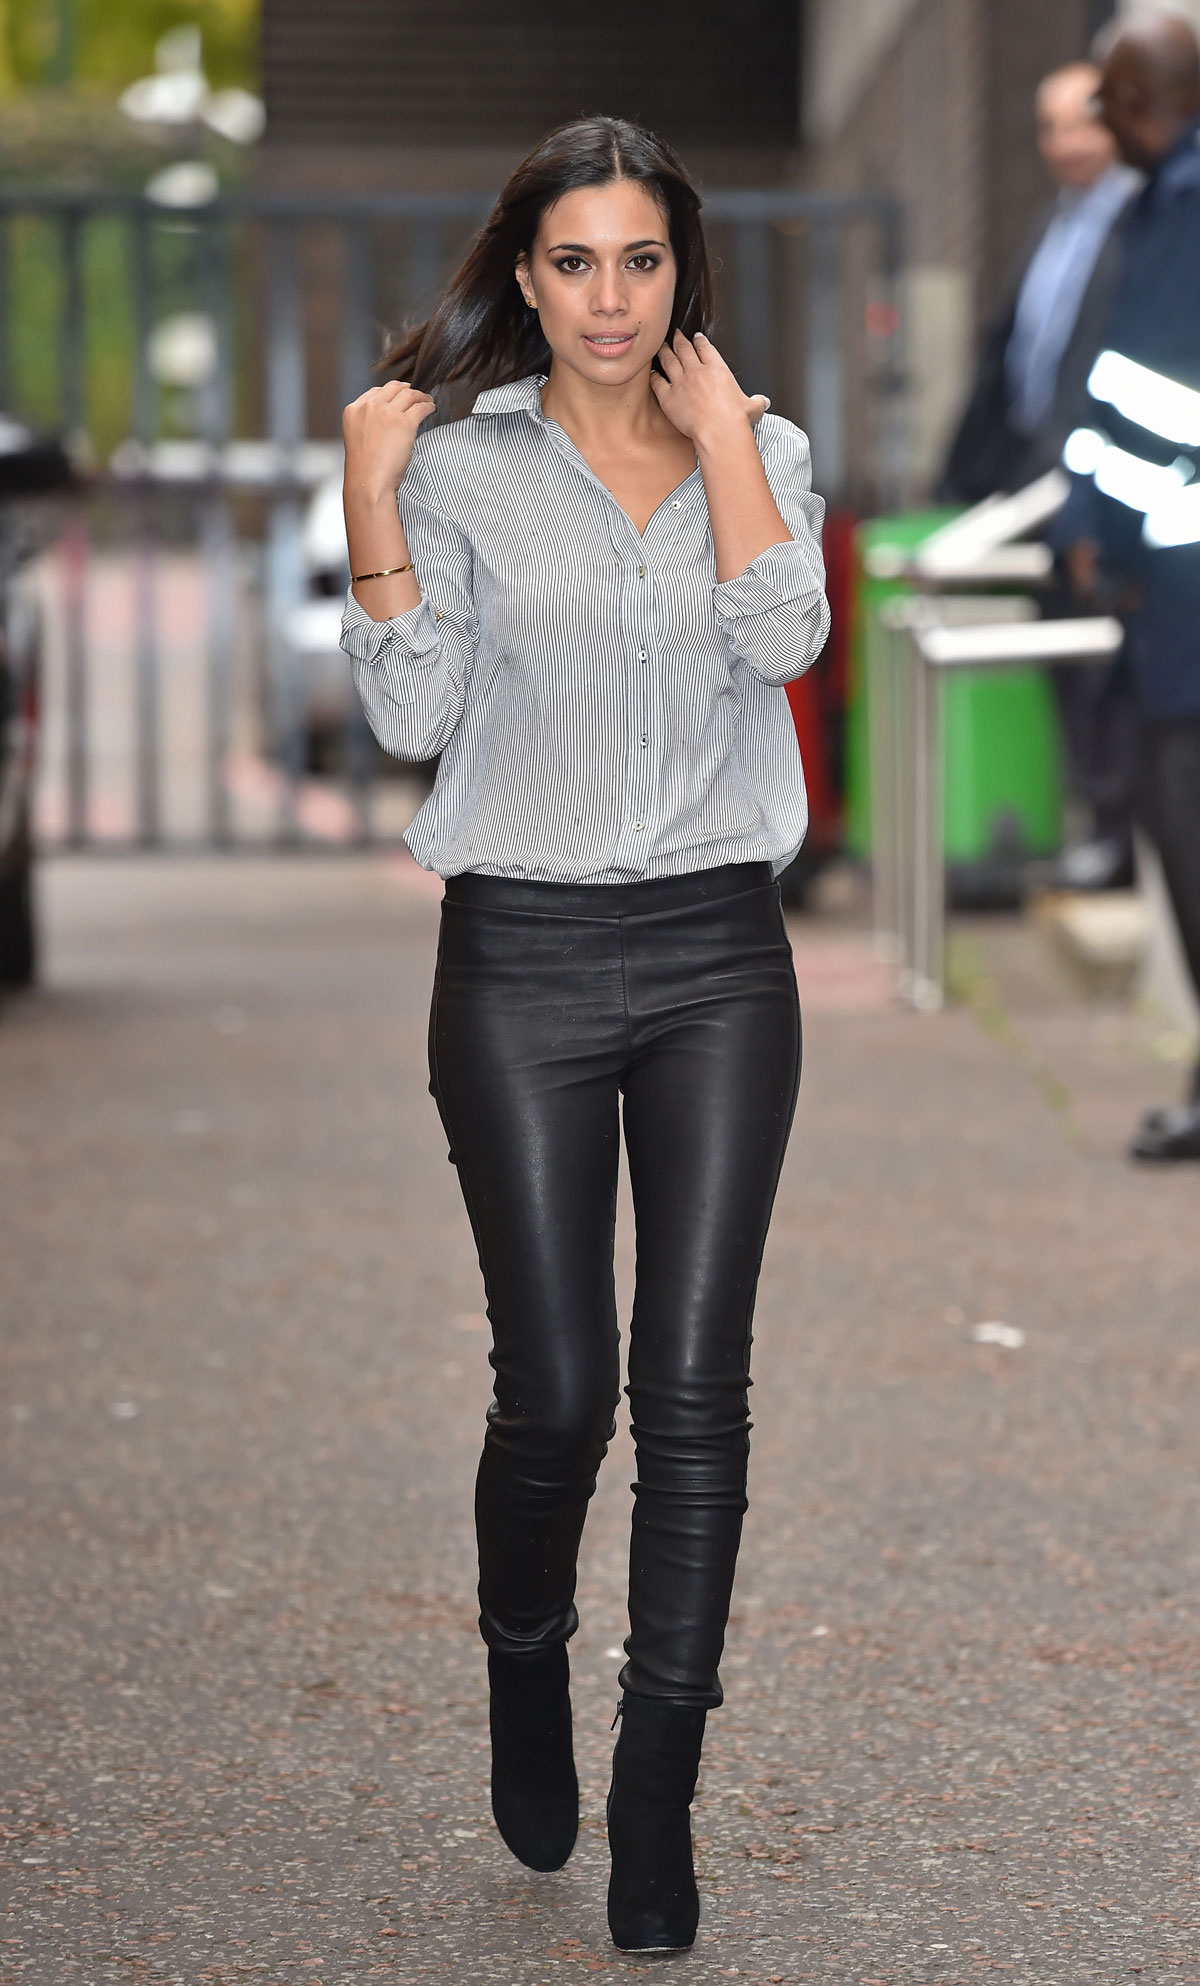 Fiona wade at itv studios leather celebrities